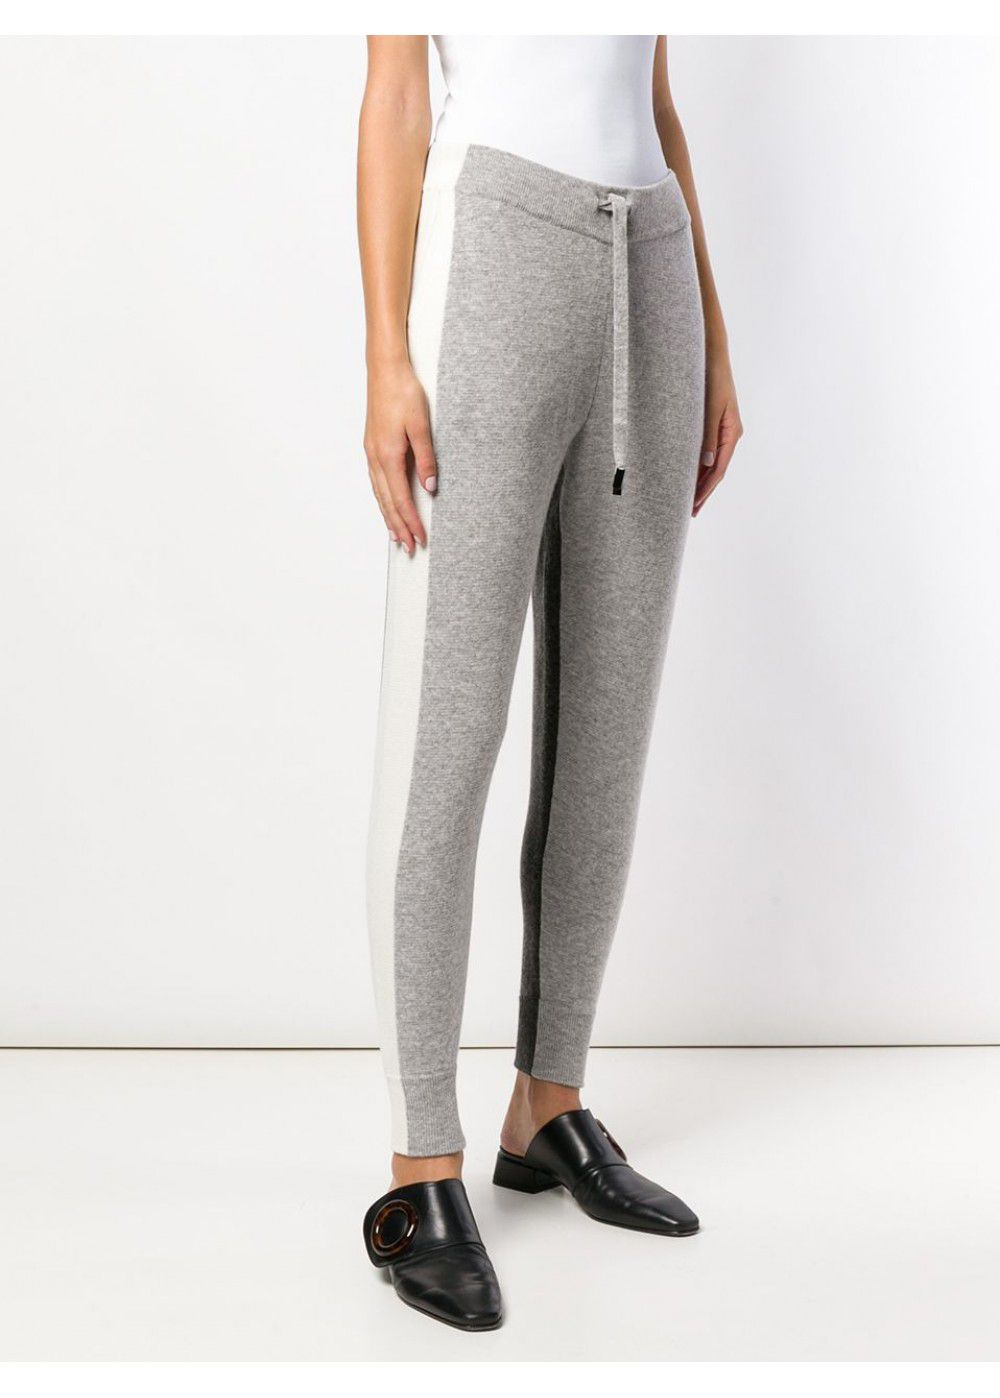 Zoe Jordan Grey Sporty Pants